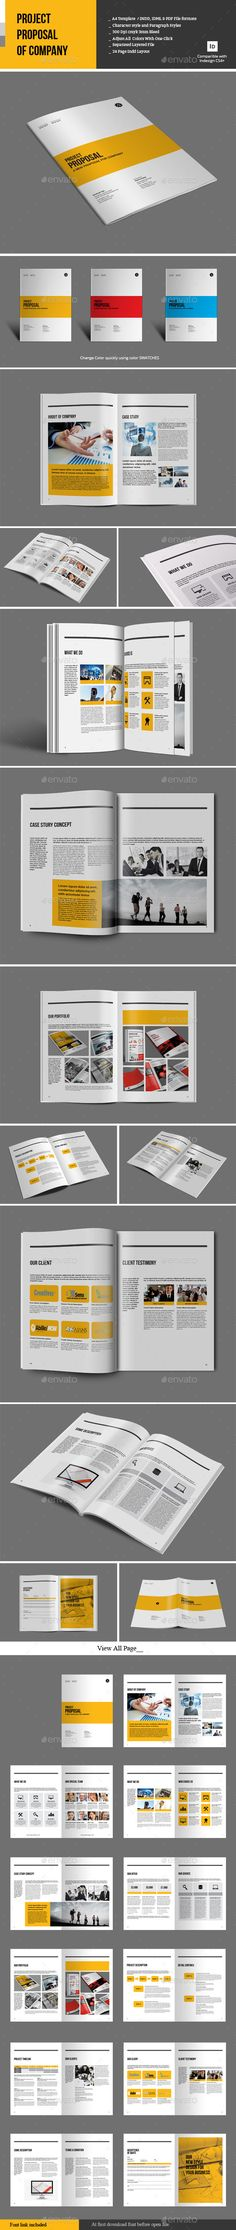 Construction Company Proposal Template Vol4 Proposal templates - construction work proposal template